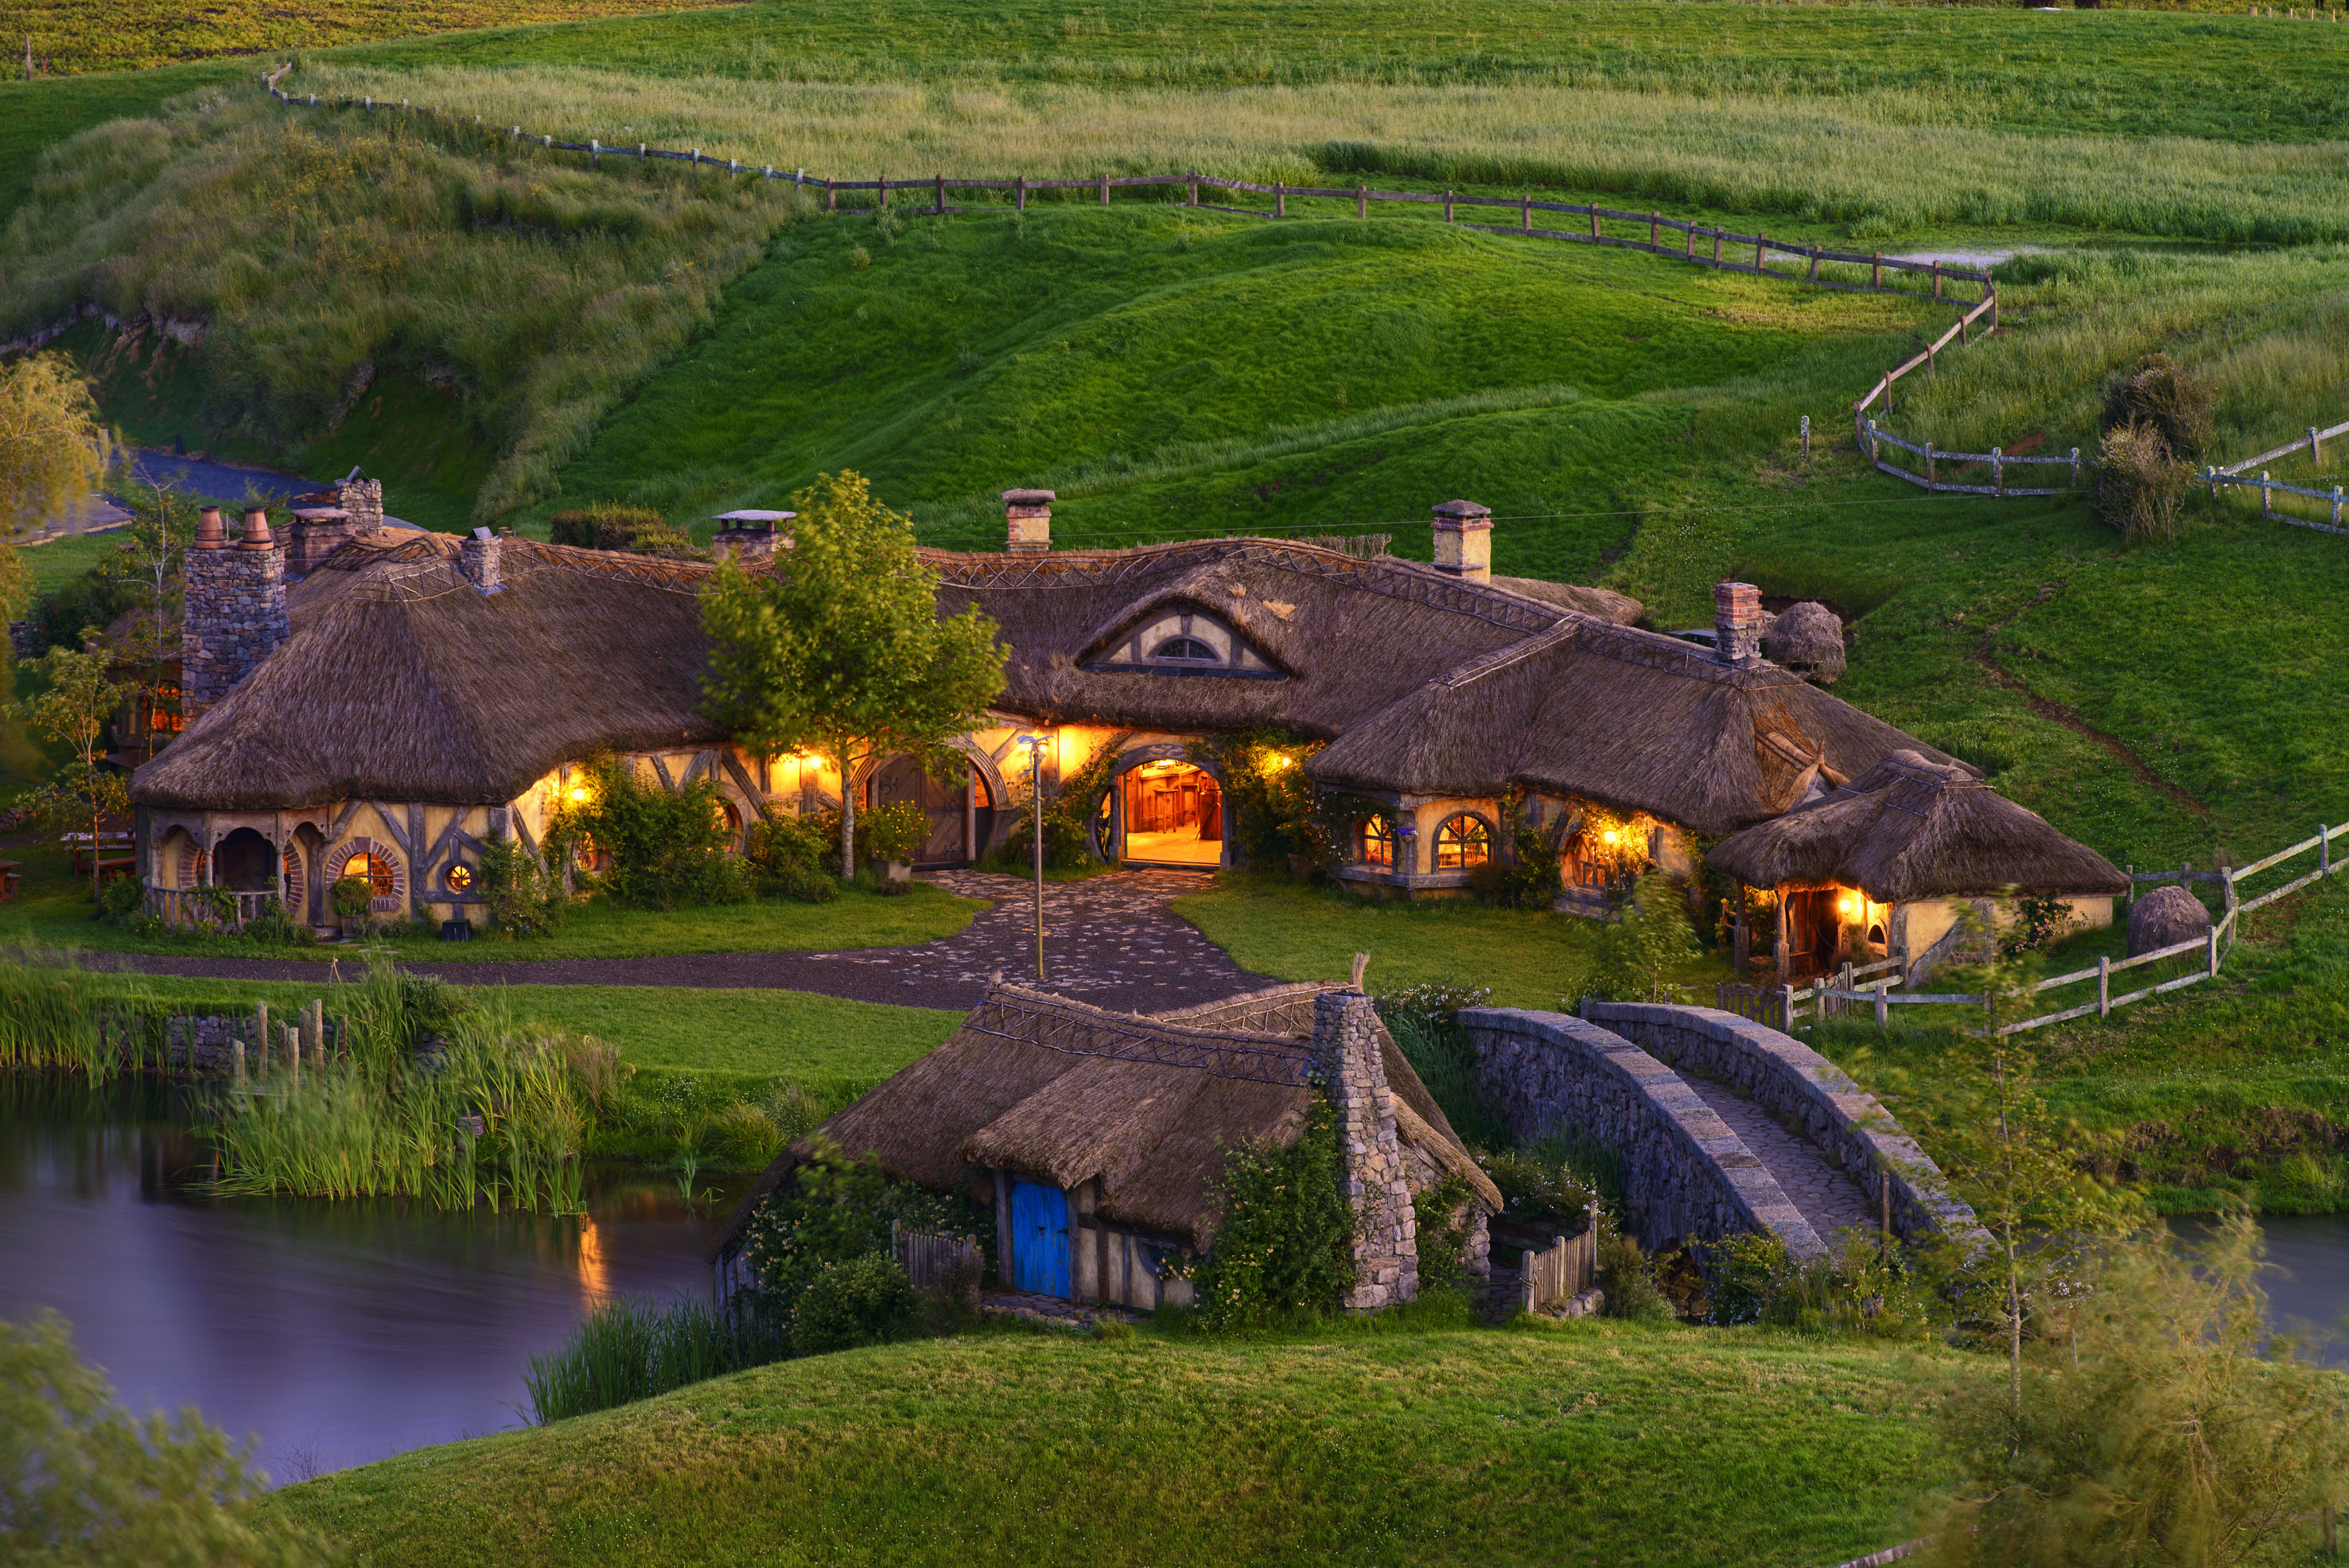 hobbiton-movie-set-4.DJ1FBg